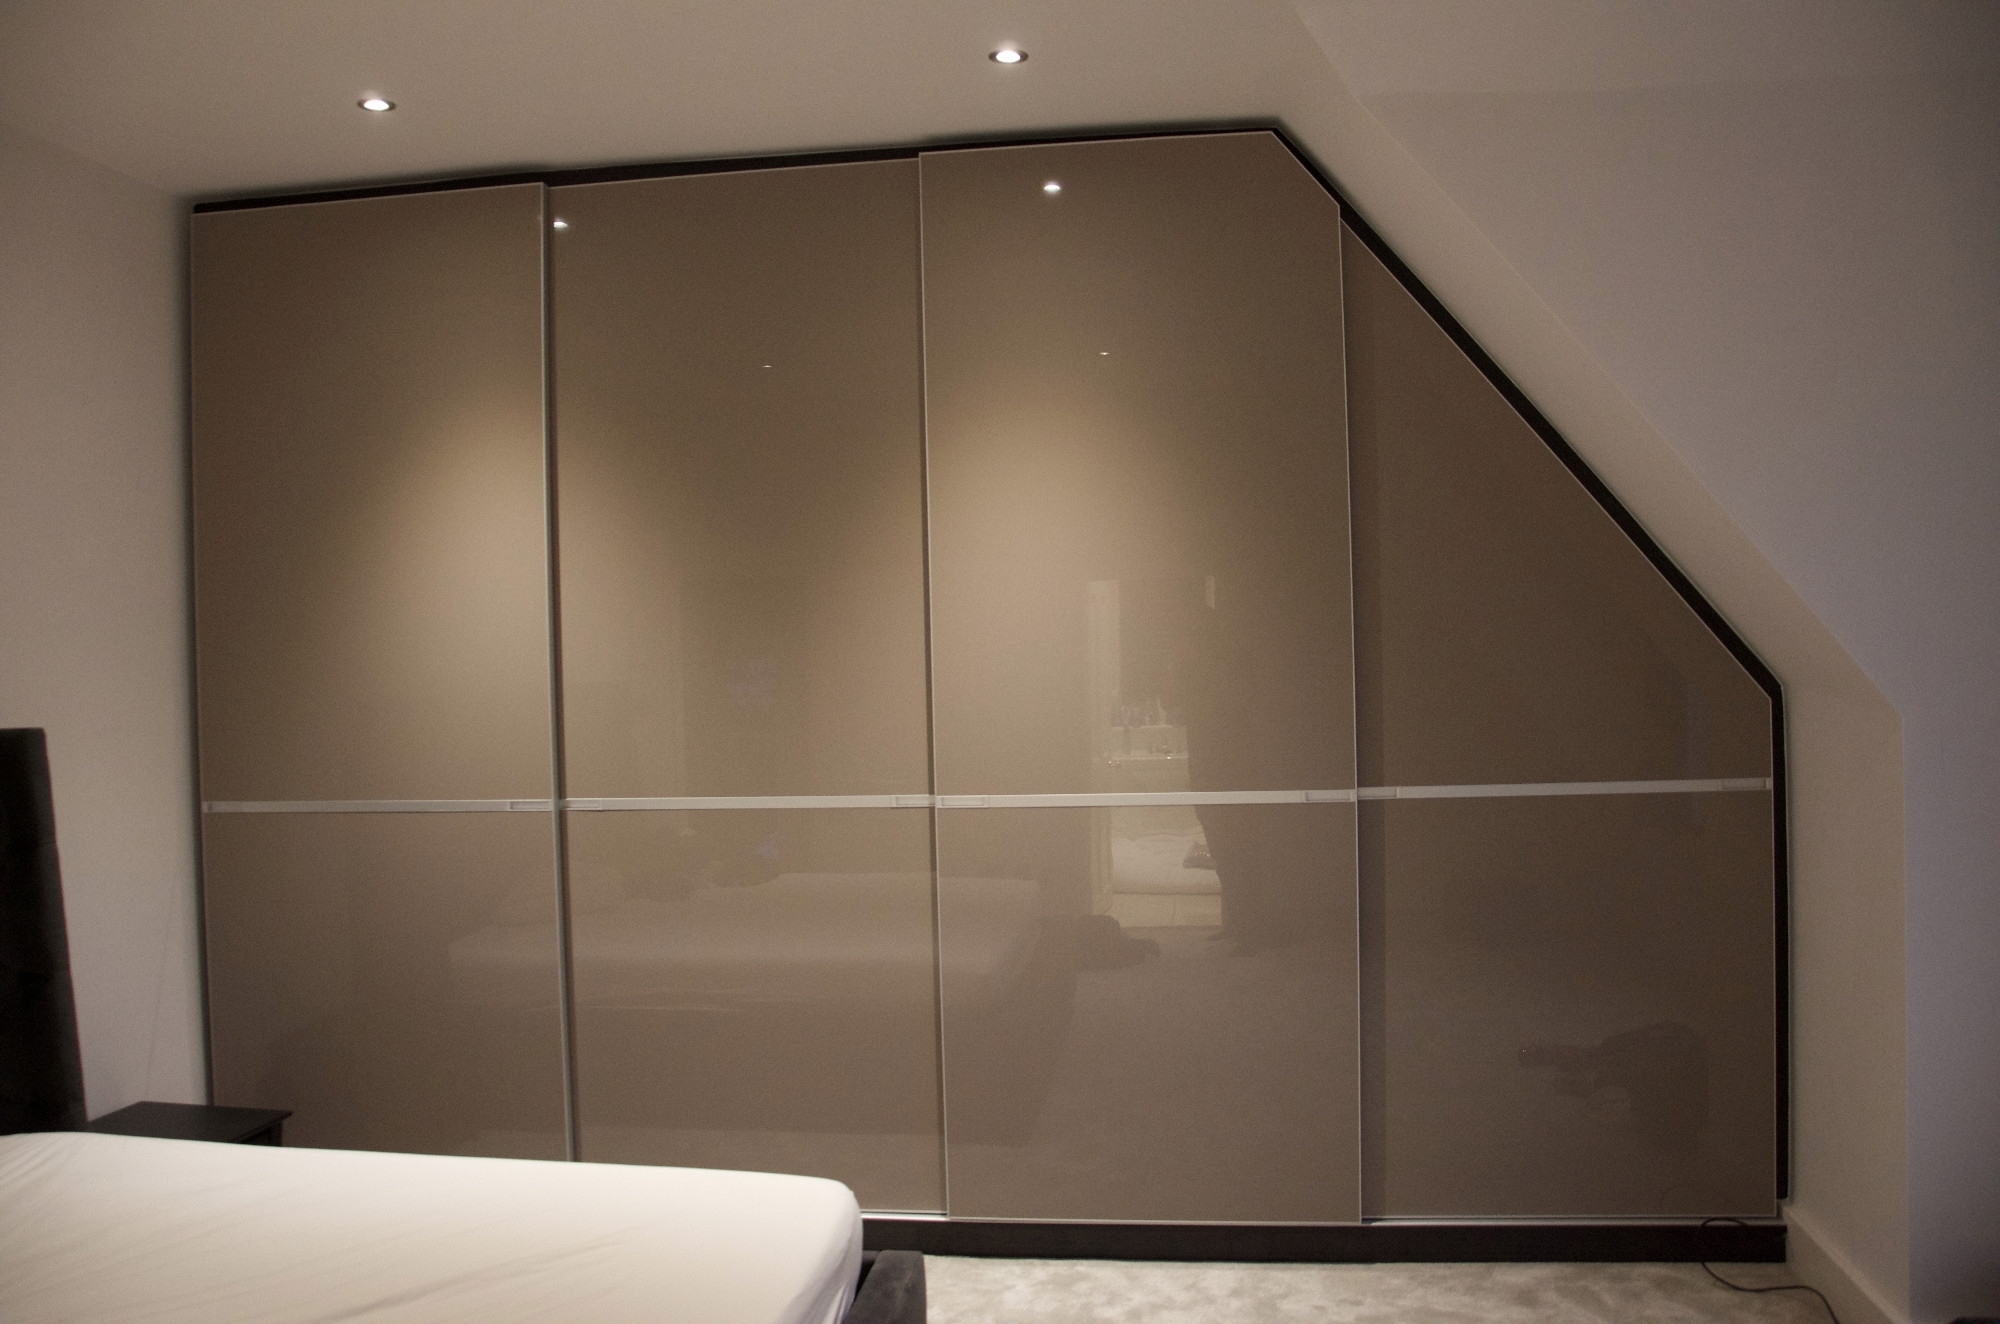 High Gloss Doors Wardrobes Pertaining To Trendy Sloping Ceiling Sliding Wardrobe Infisso Range, Enfield (View 4 of 15)